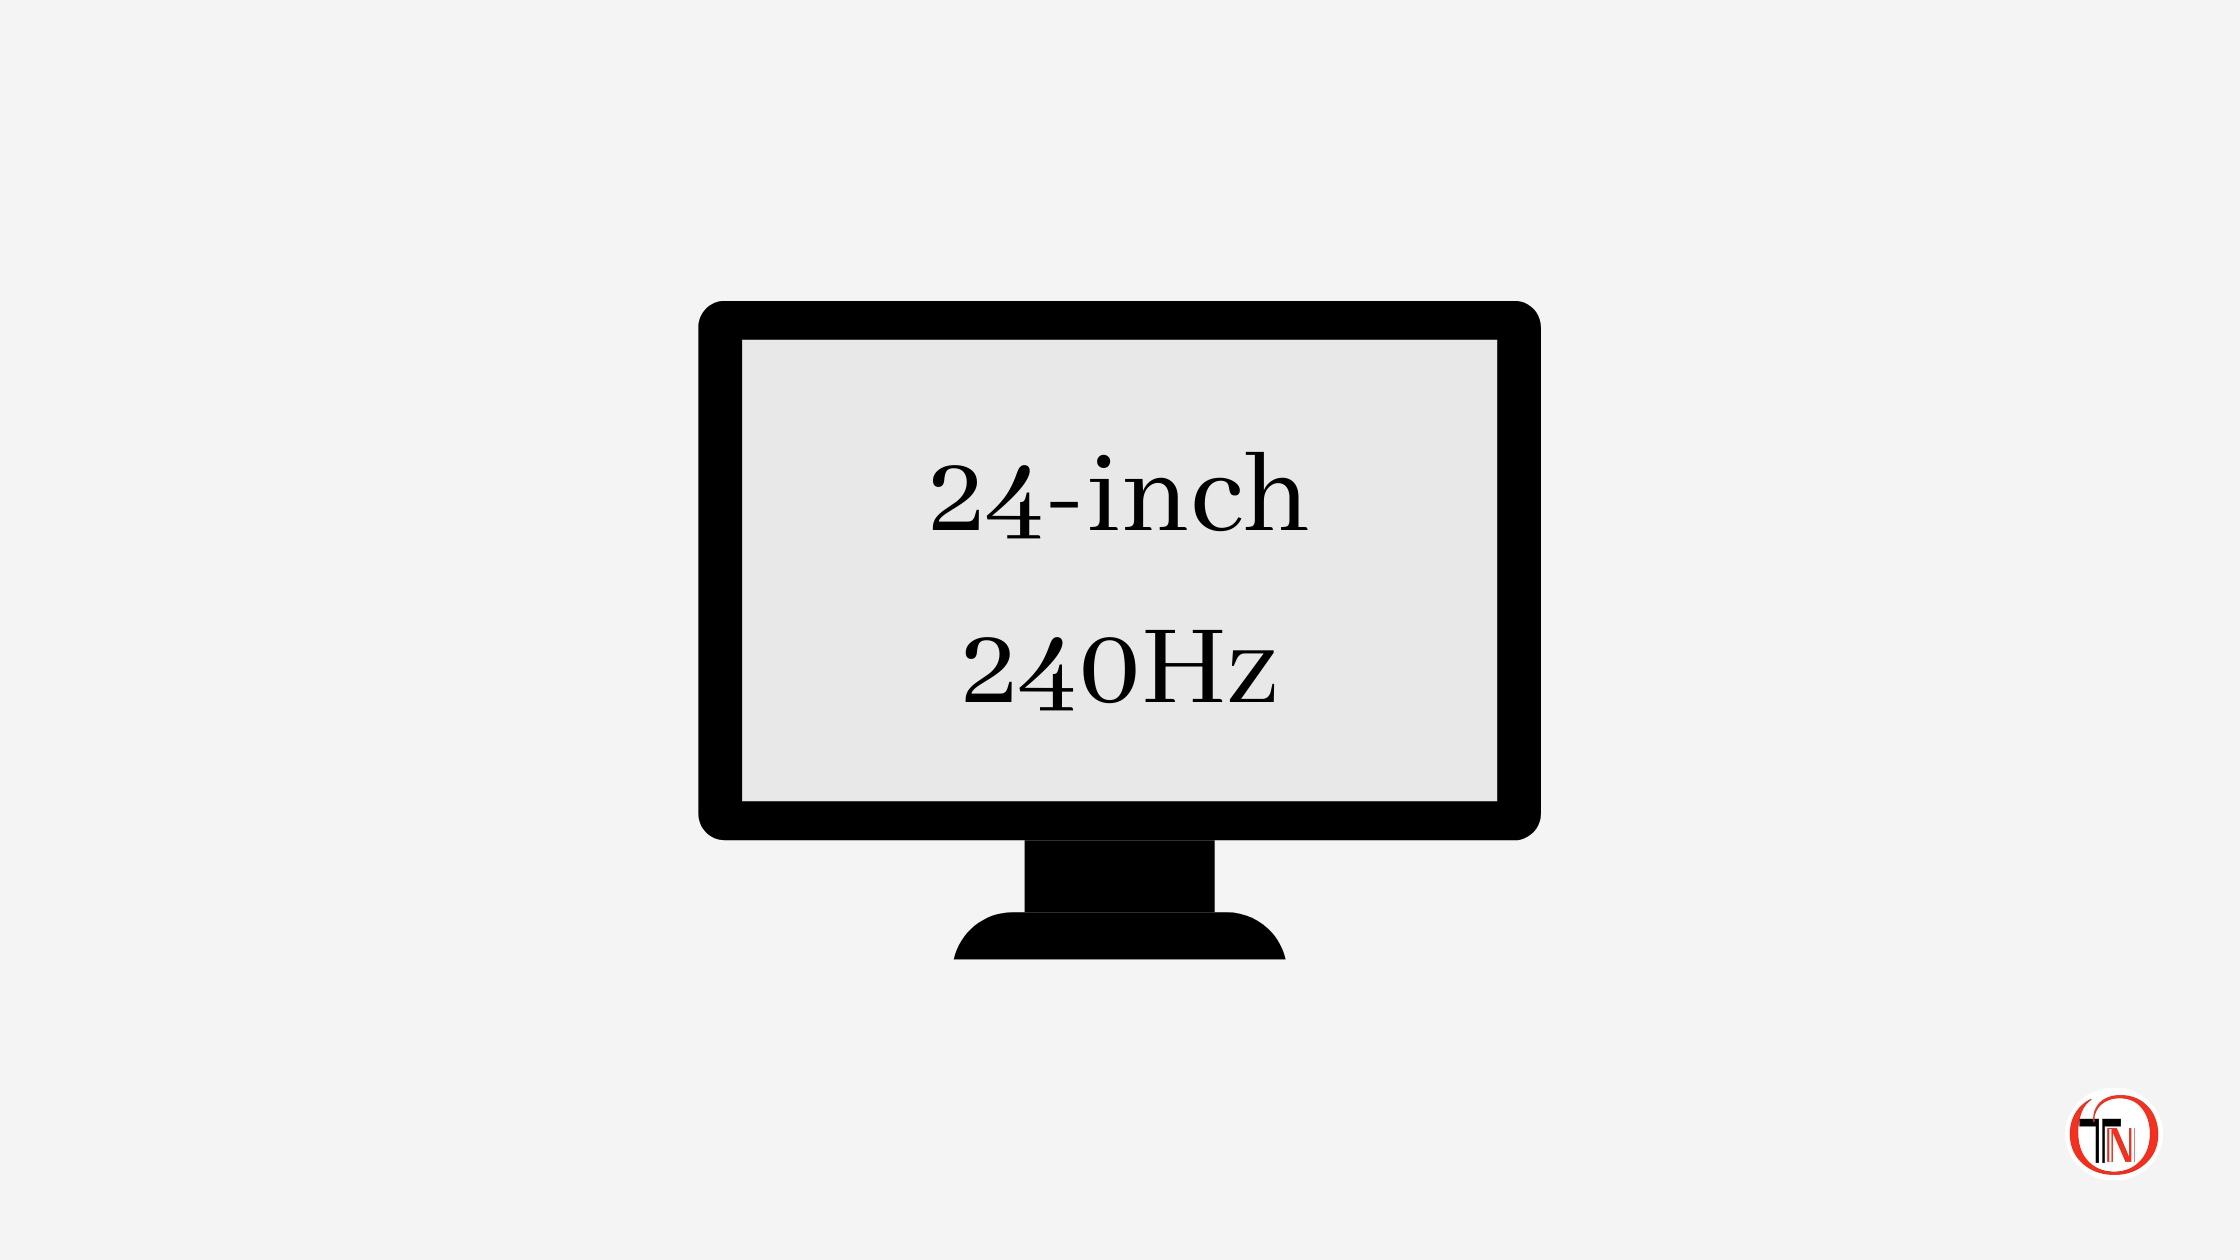 Best 24-inch 240hz Gaming Monitor